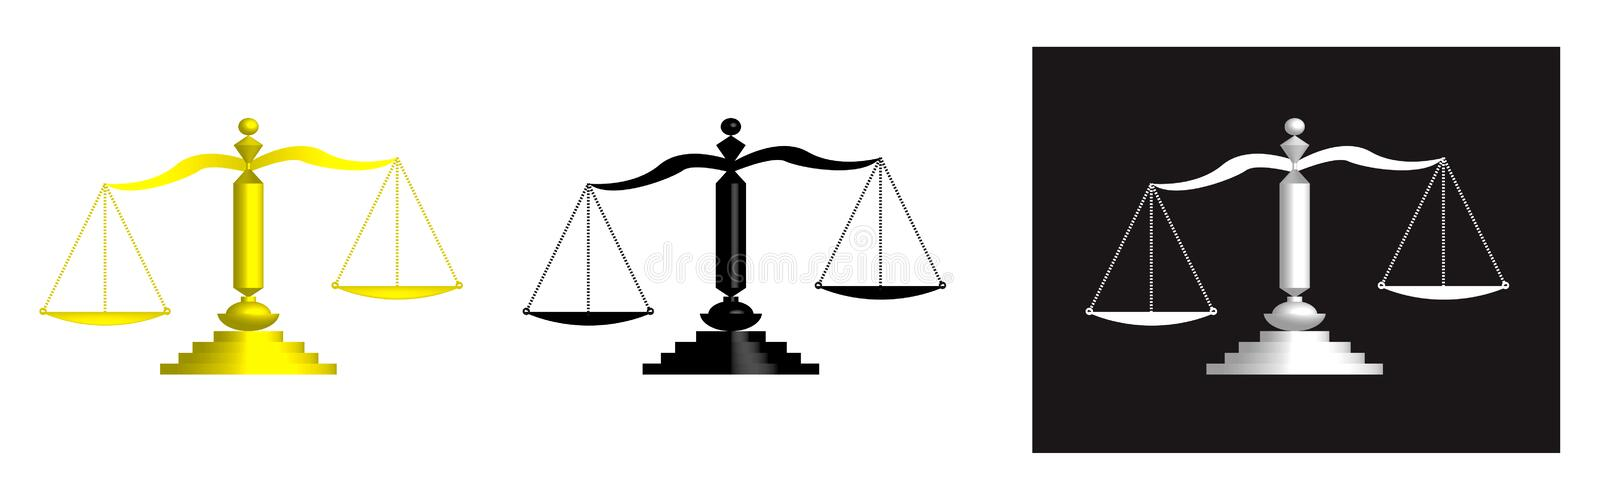 The scale of justice vector illustration